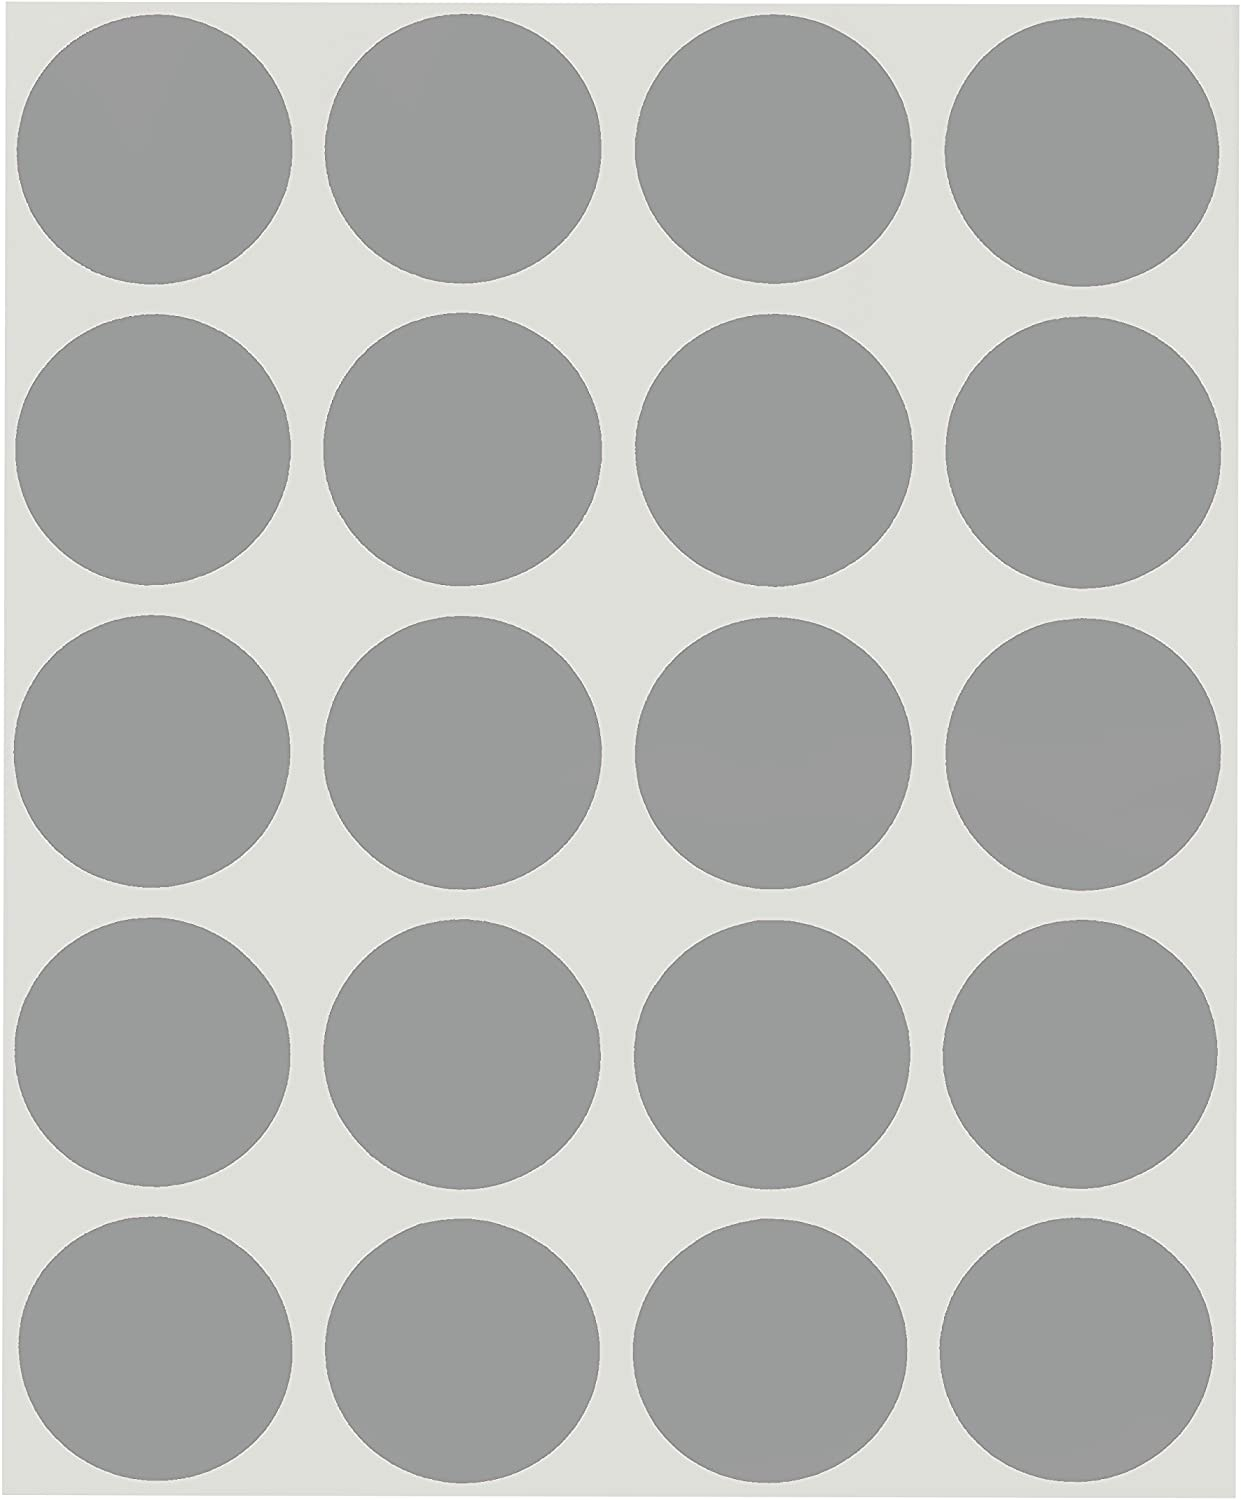 """1//4/"""" Lt GREY GRAY Round Color Coding Inventory Label Dots Stickers MADE IN USA"""